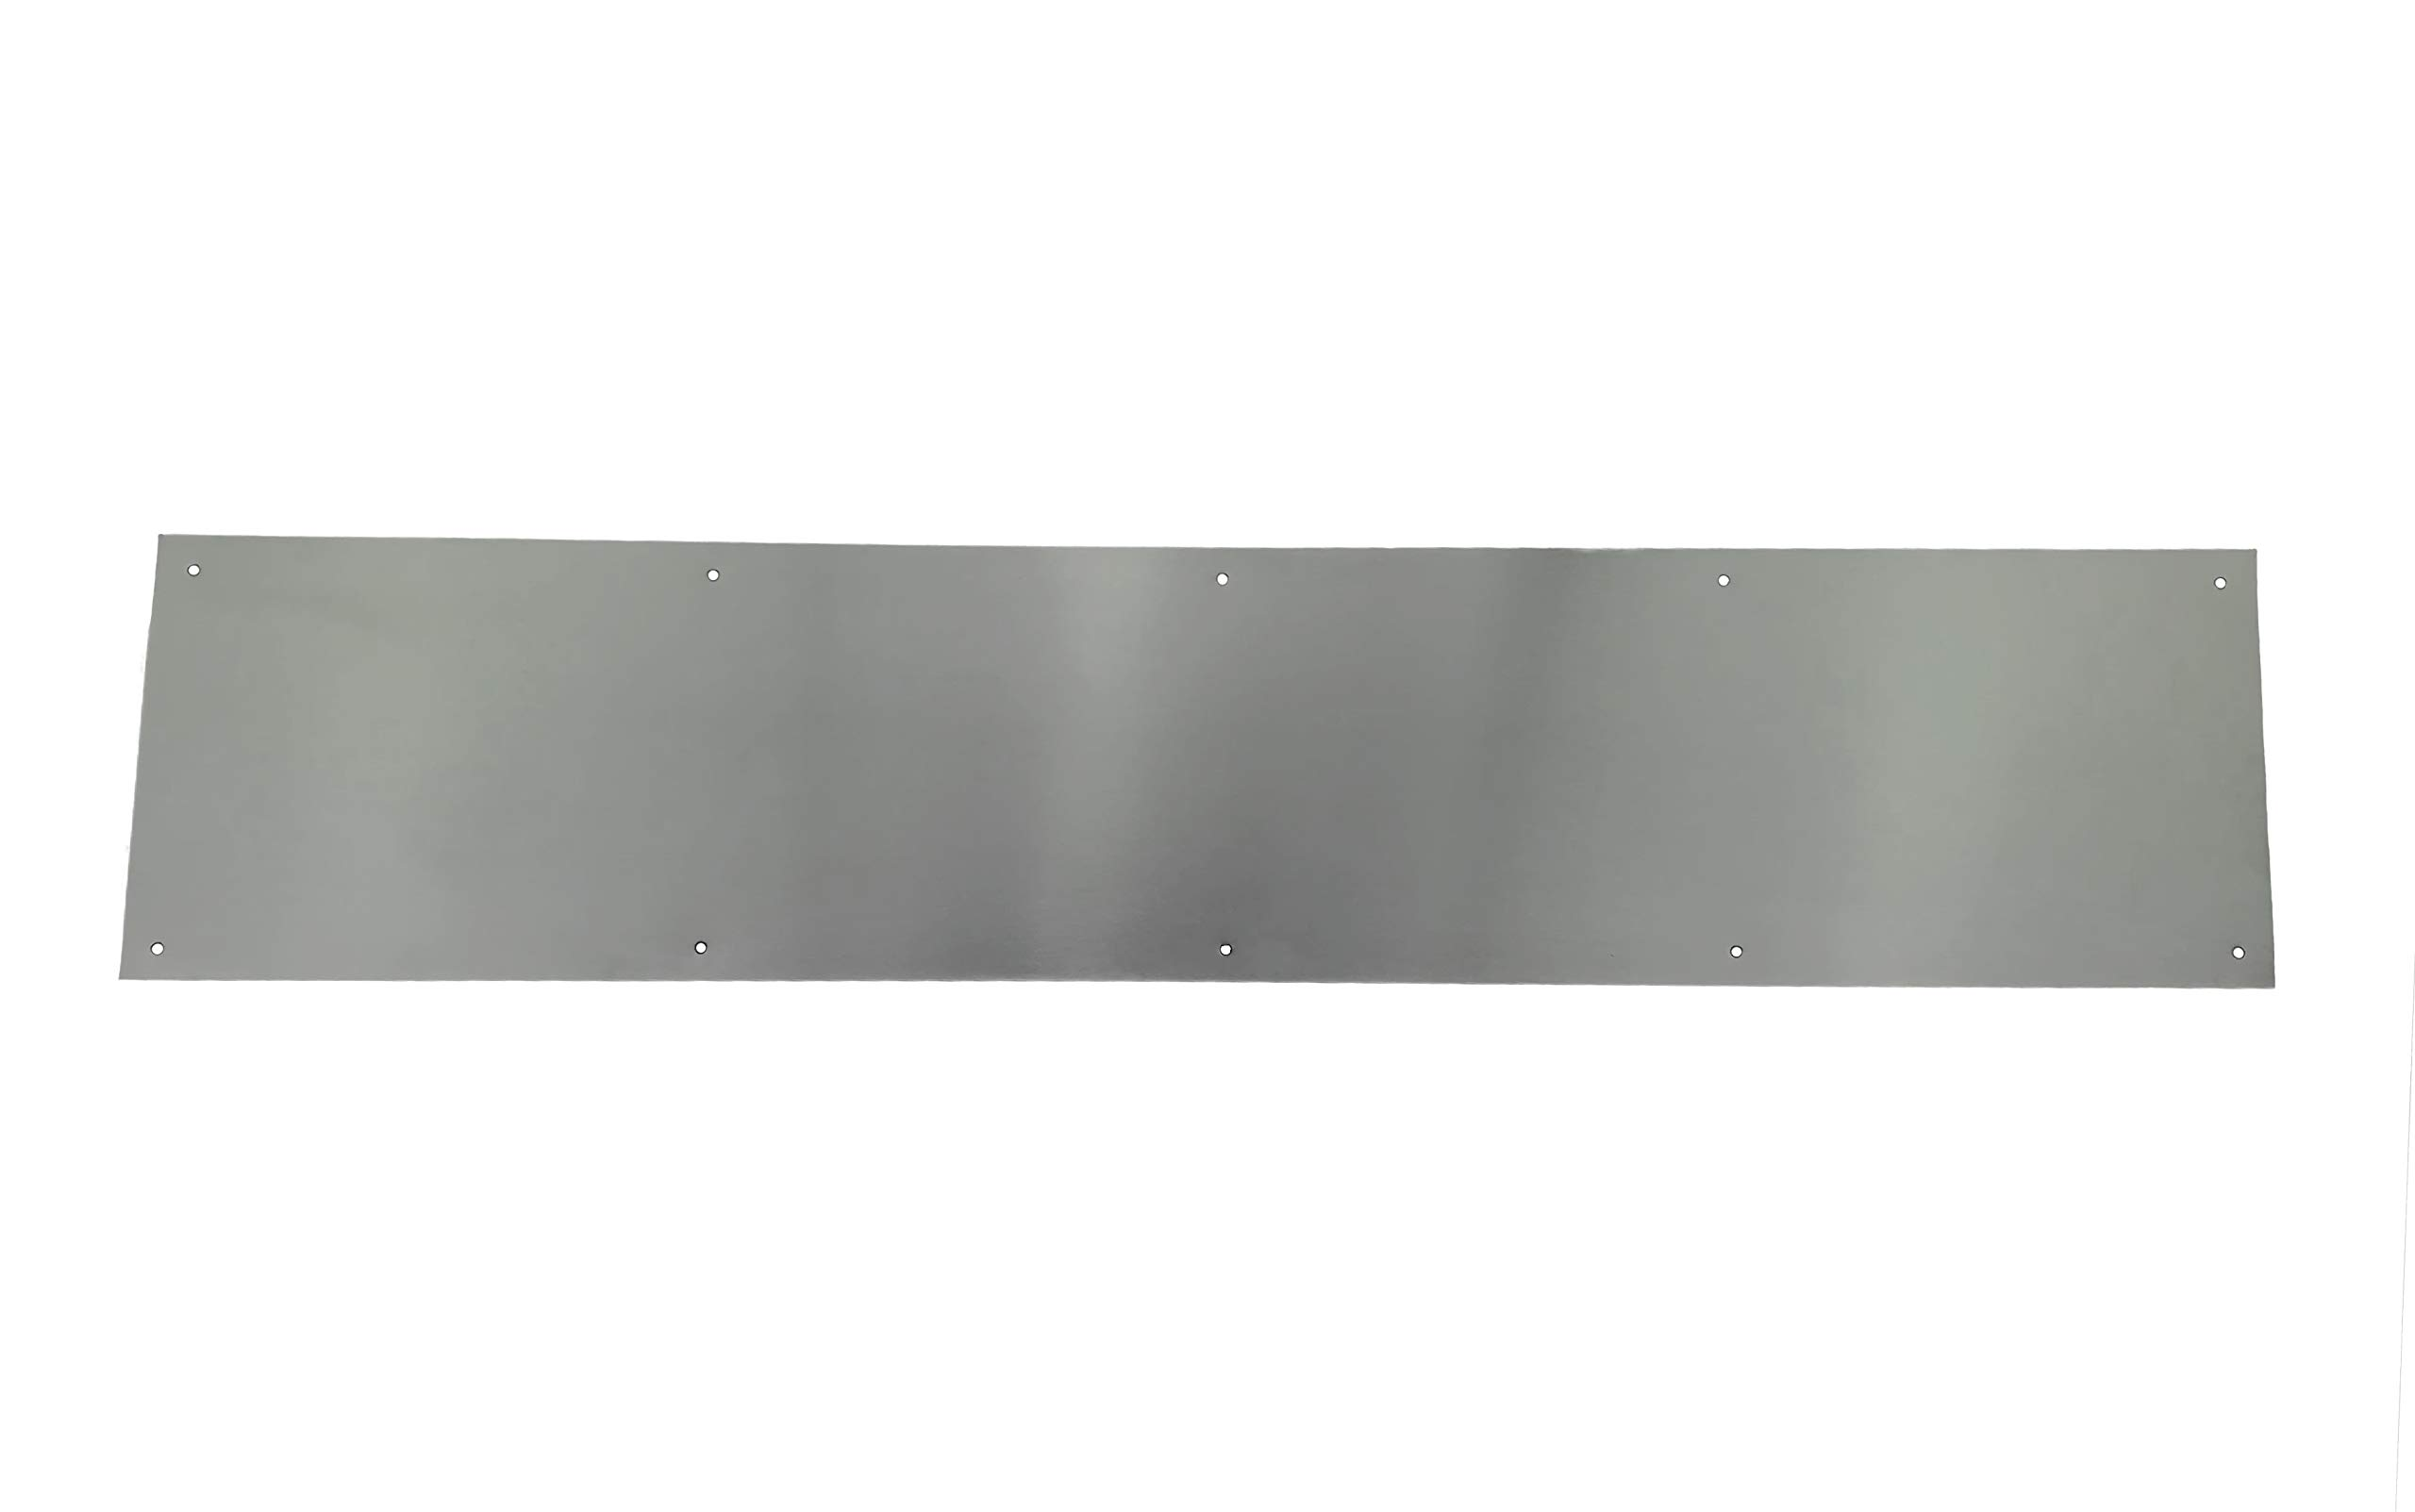 Stainless Steel Door Kick Plate Mop Plate Available in Many Sizes 8 x 36 Heavy Duty Door Protection Plate Commercial Grade Mounting Hardware Included